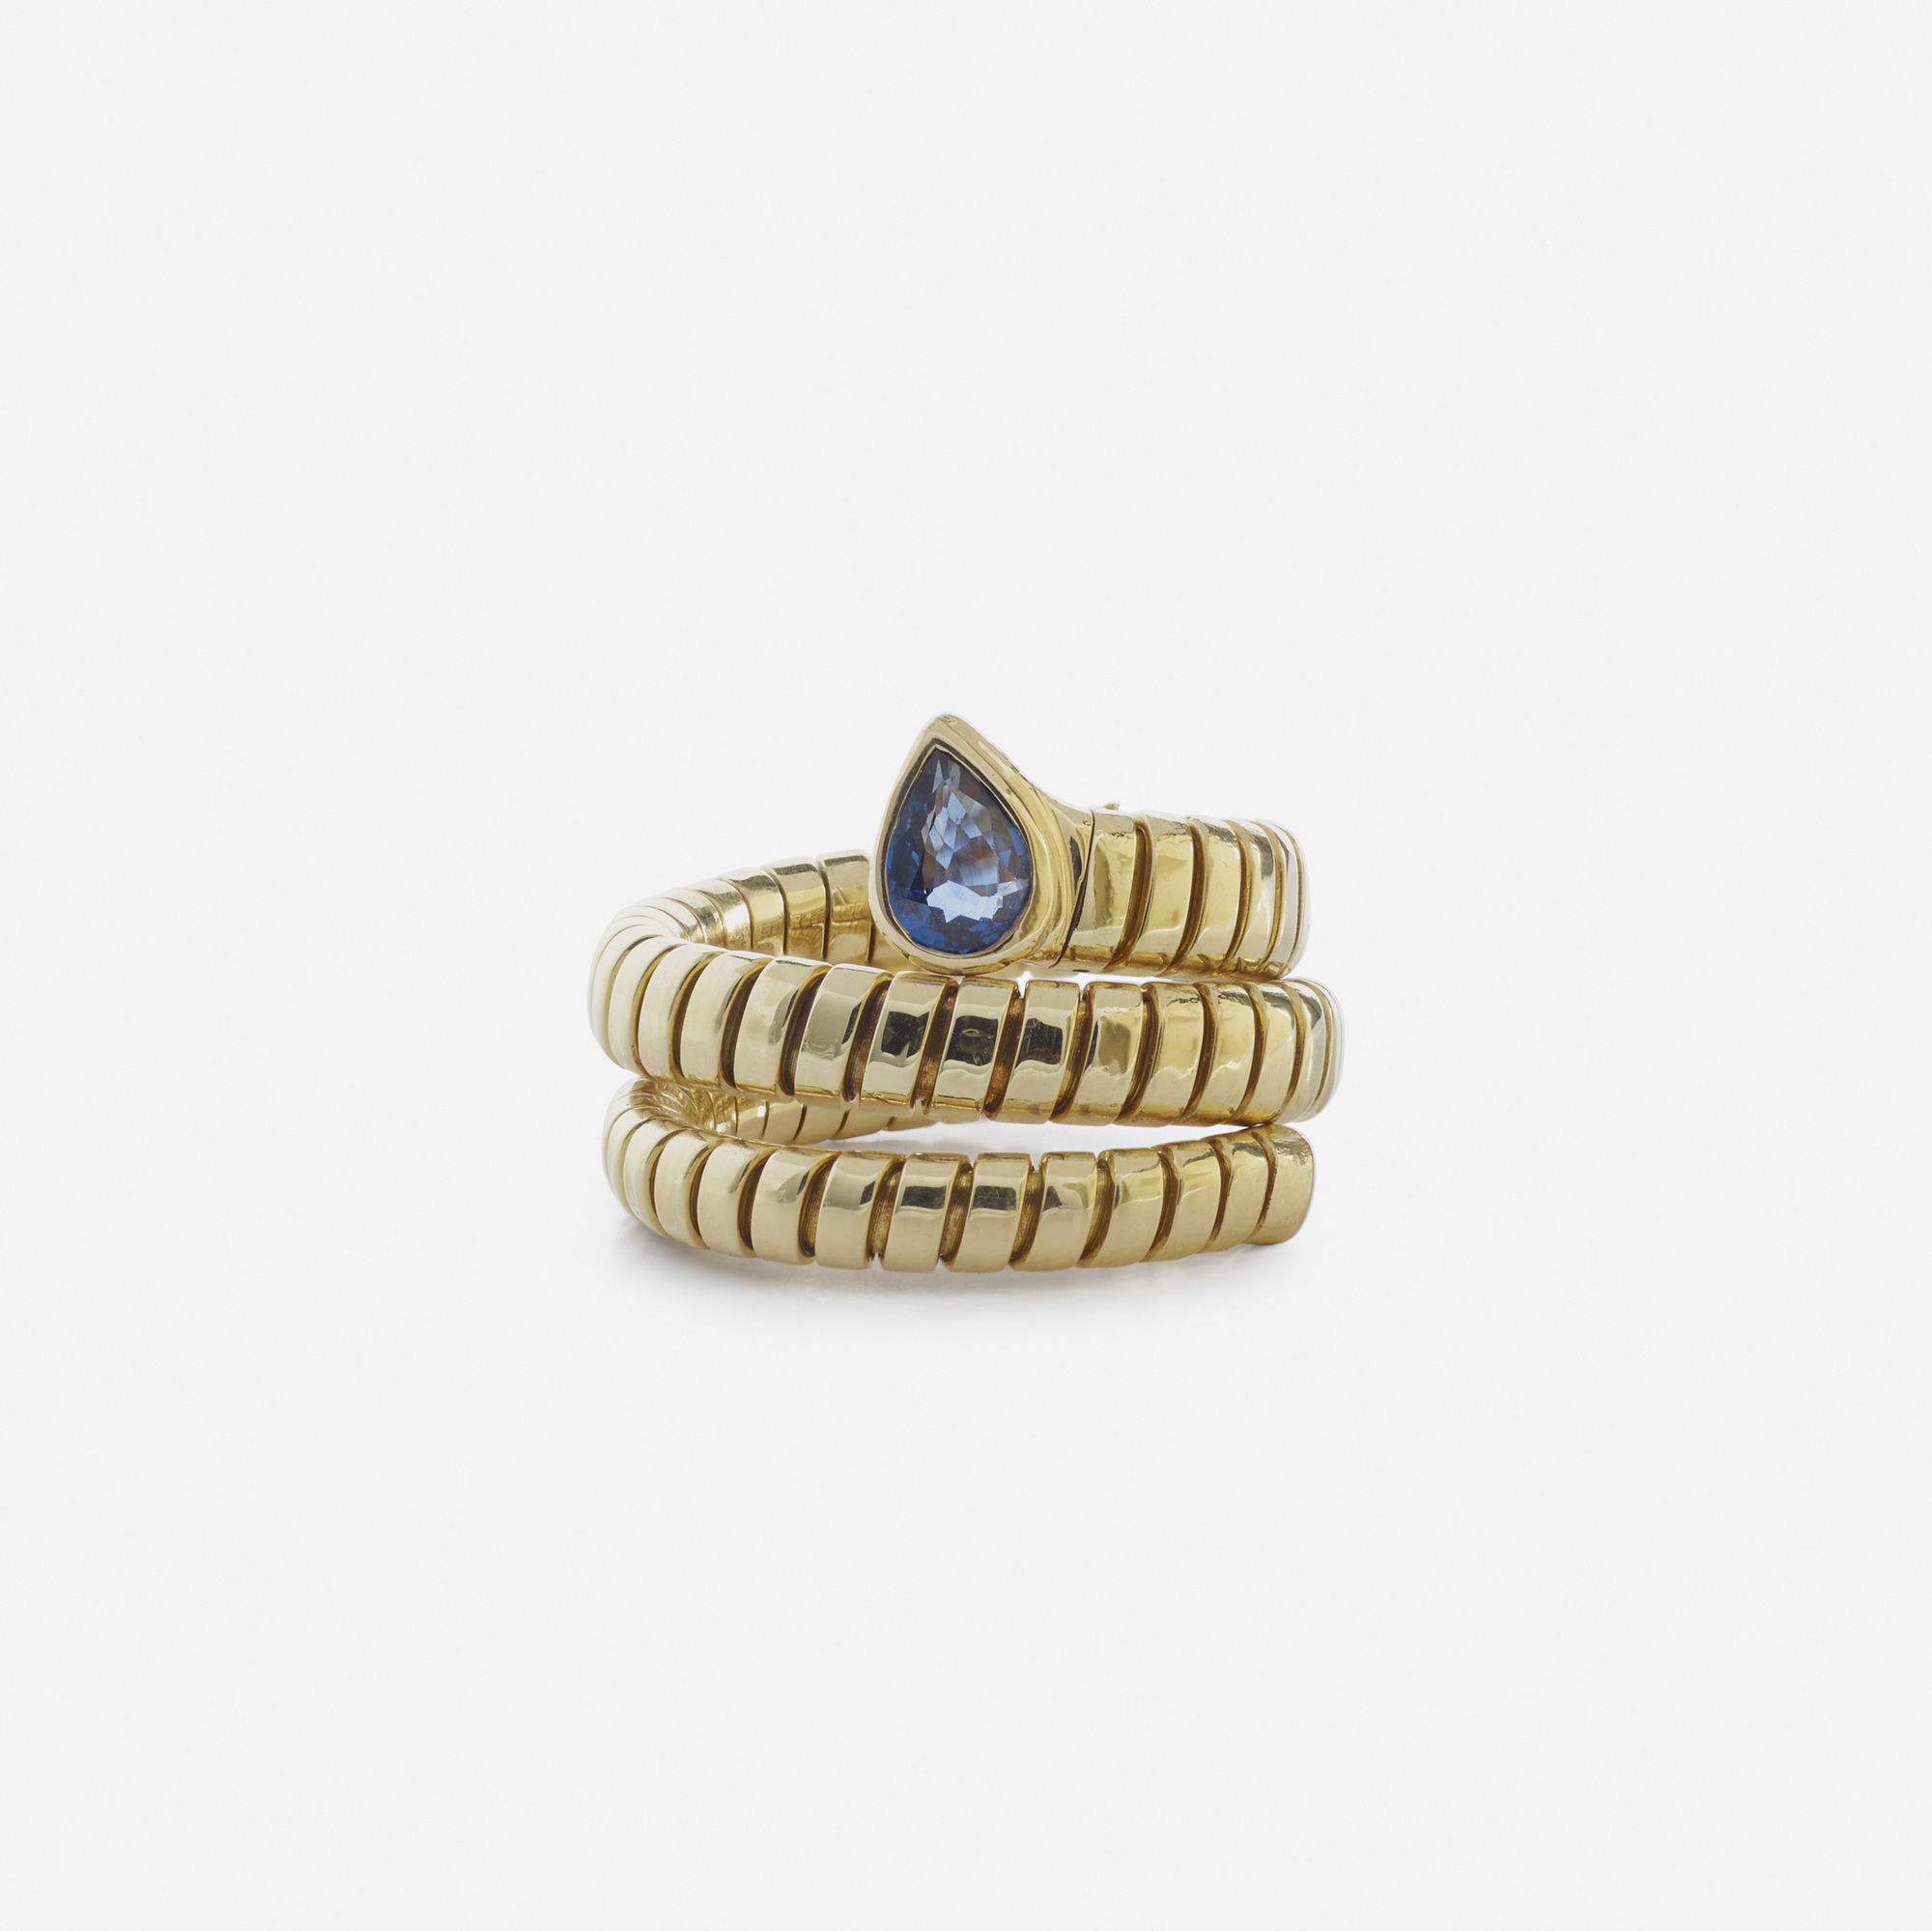 201: Bulgari / A gold and sapphire Tubogas ring (2 of 2)